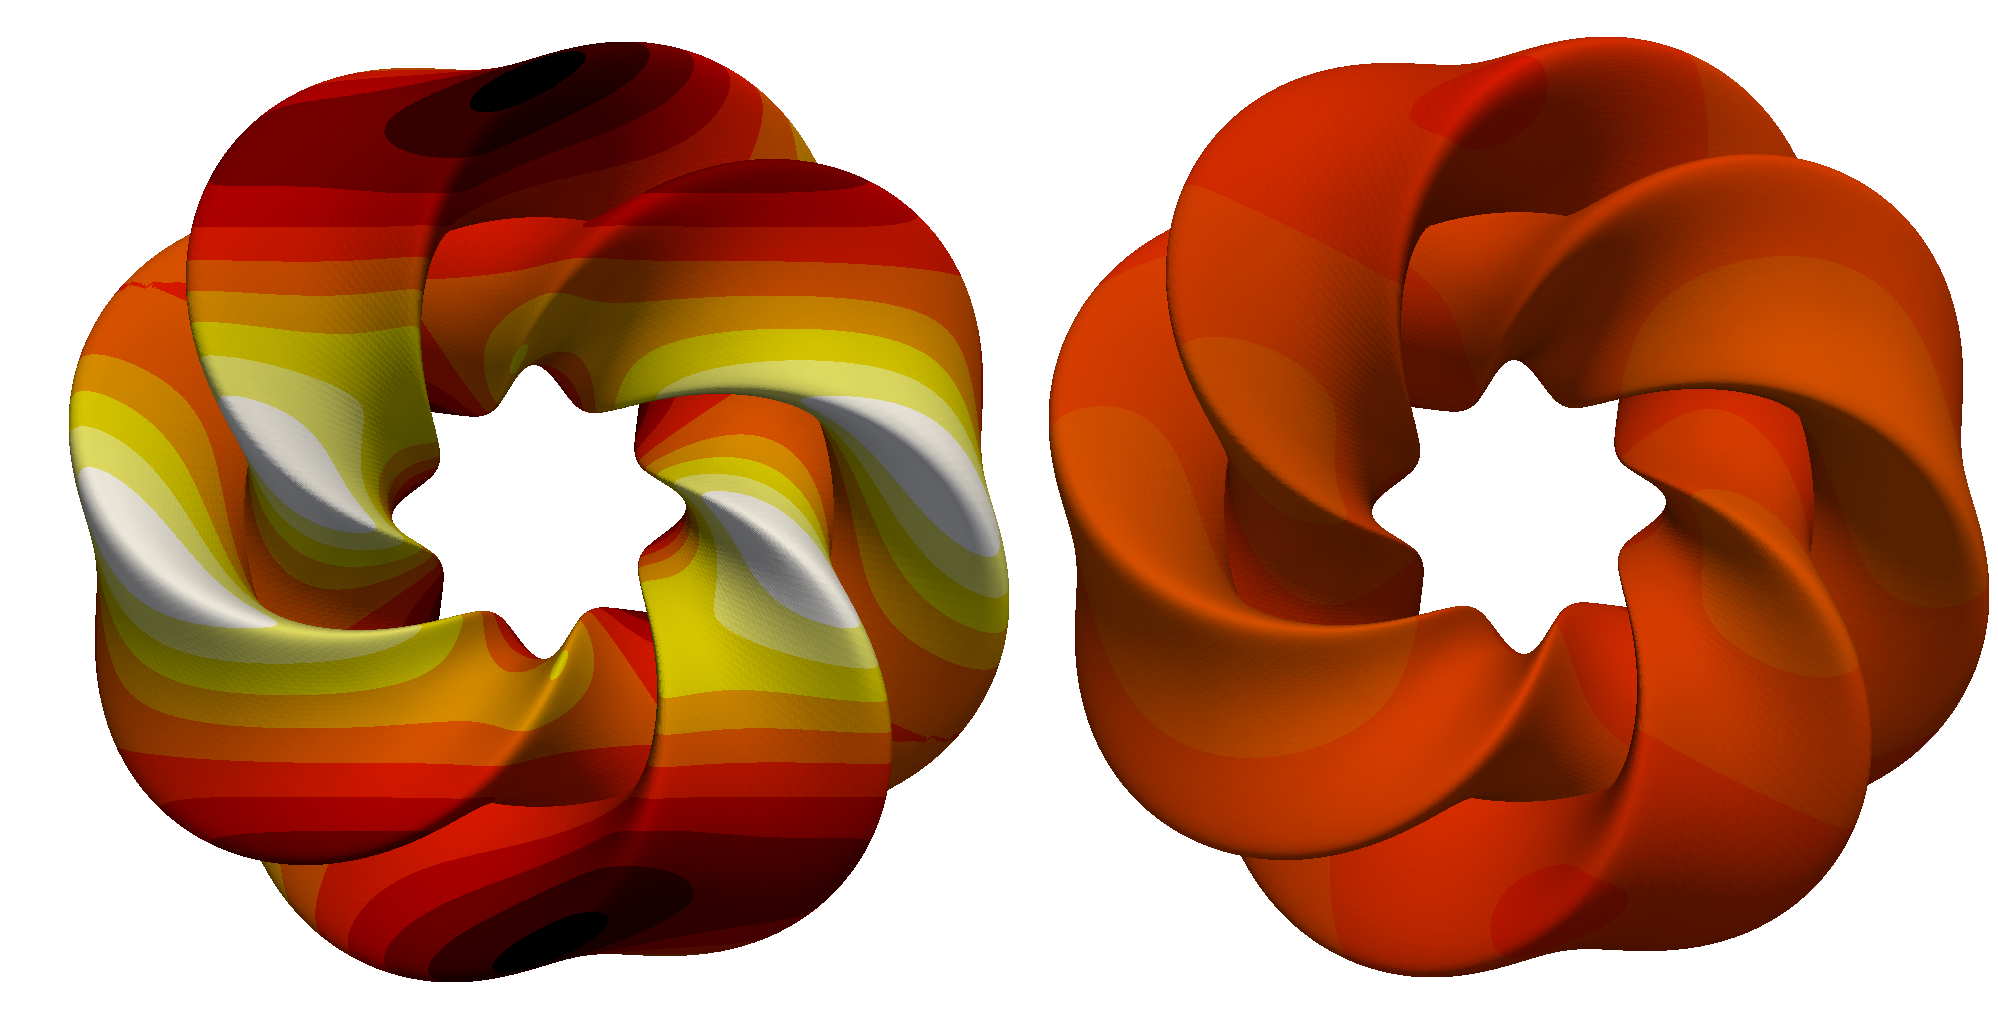 Sensitivity analysis of the heat equation on a Gray's Klein bottle